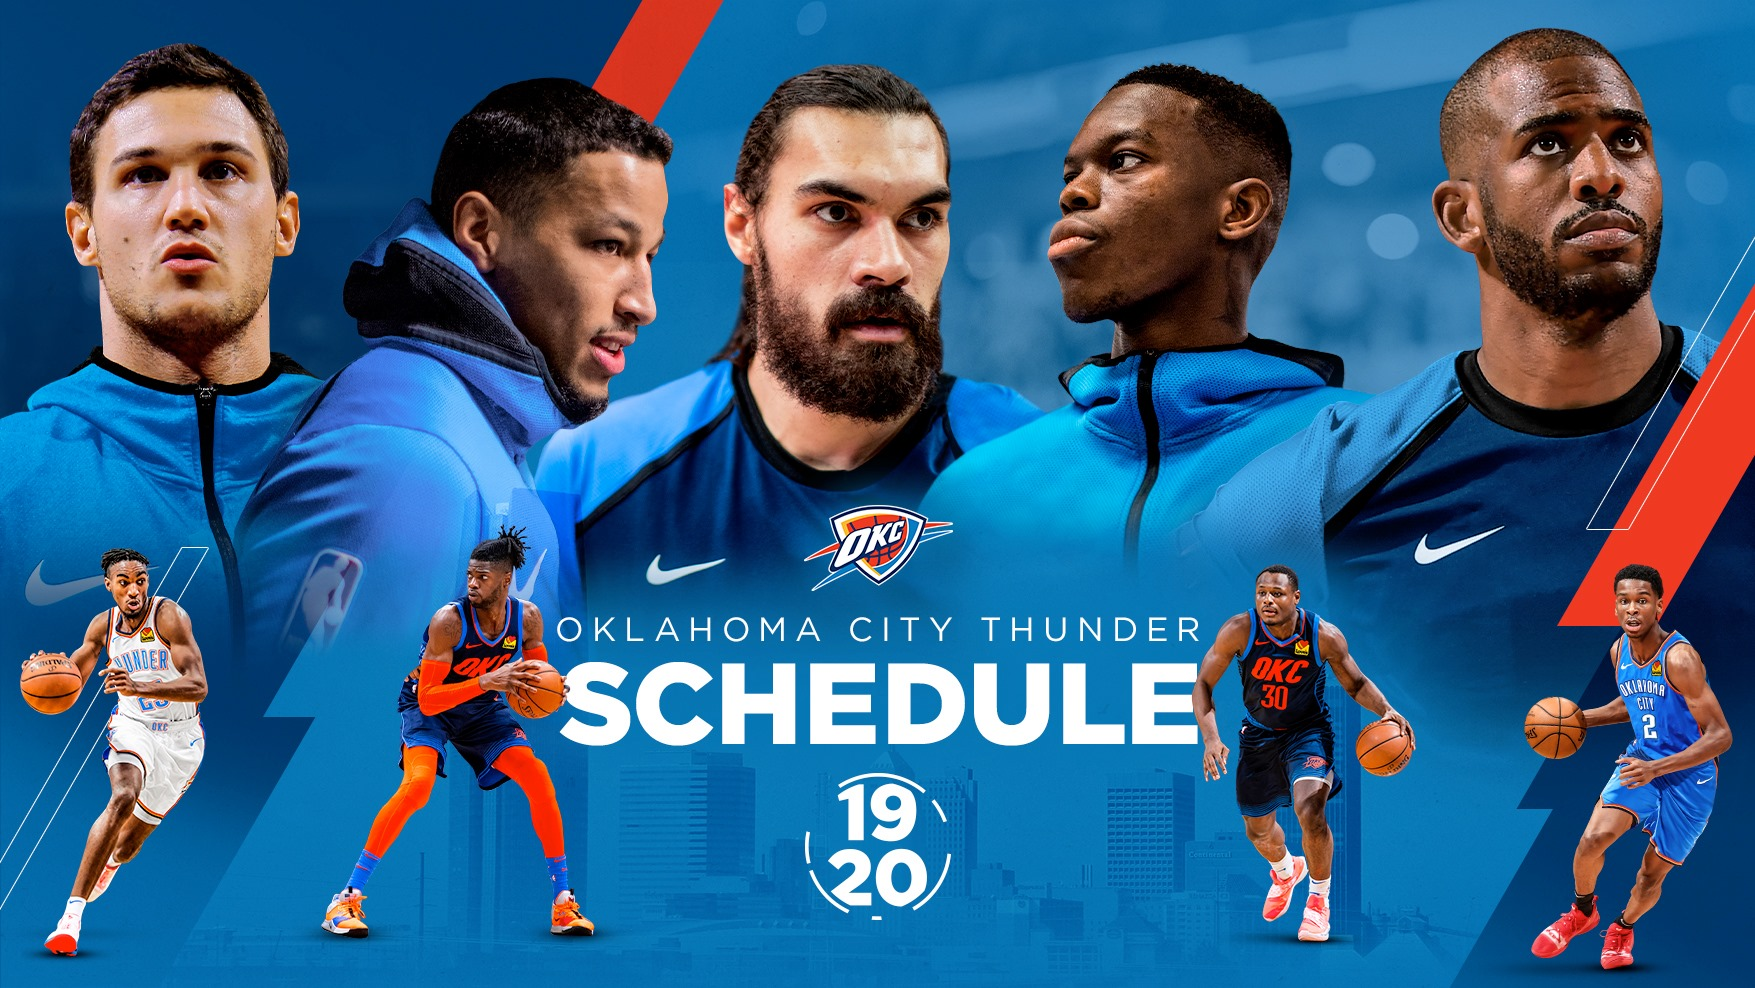 graphic about Okc Thunder Printable Schedule called Okc Thunder Timetable 2020 Plan 2020